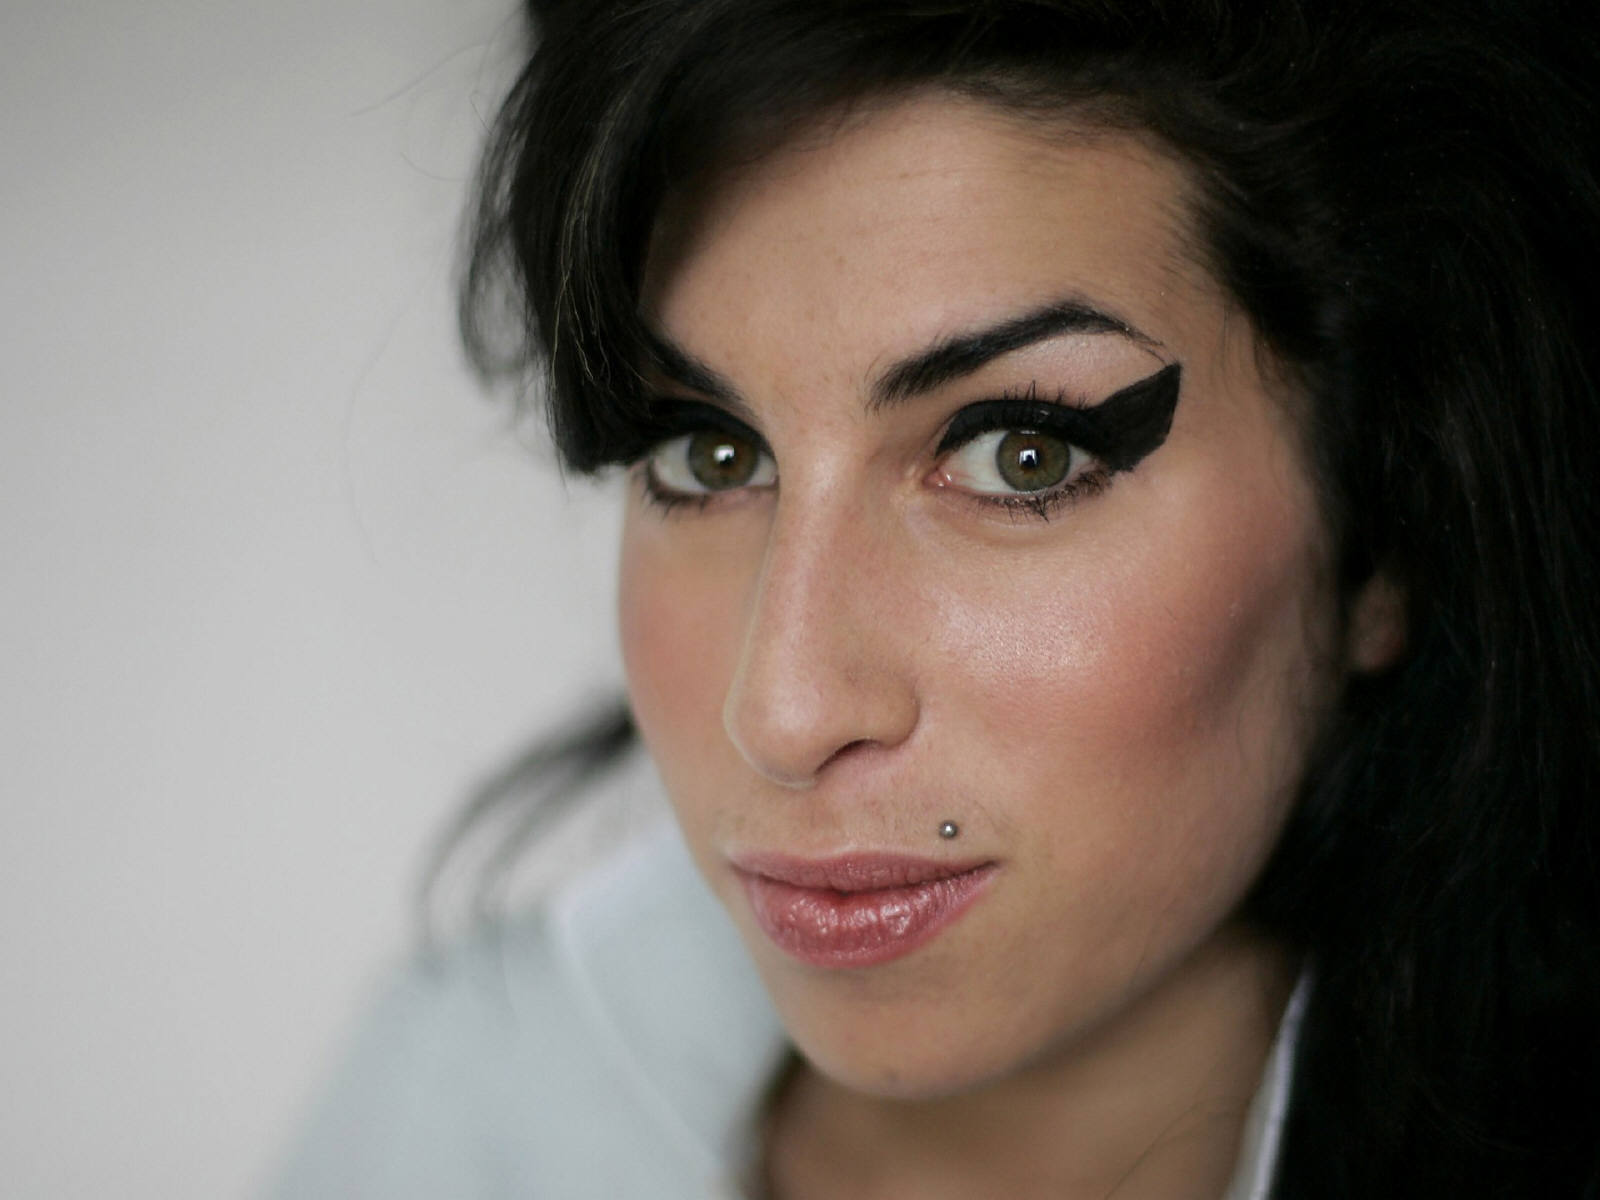 Amy Winehouse   232  morta  questa volta davvero Amy Winehouse